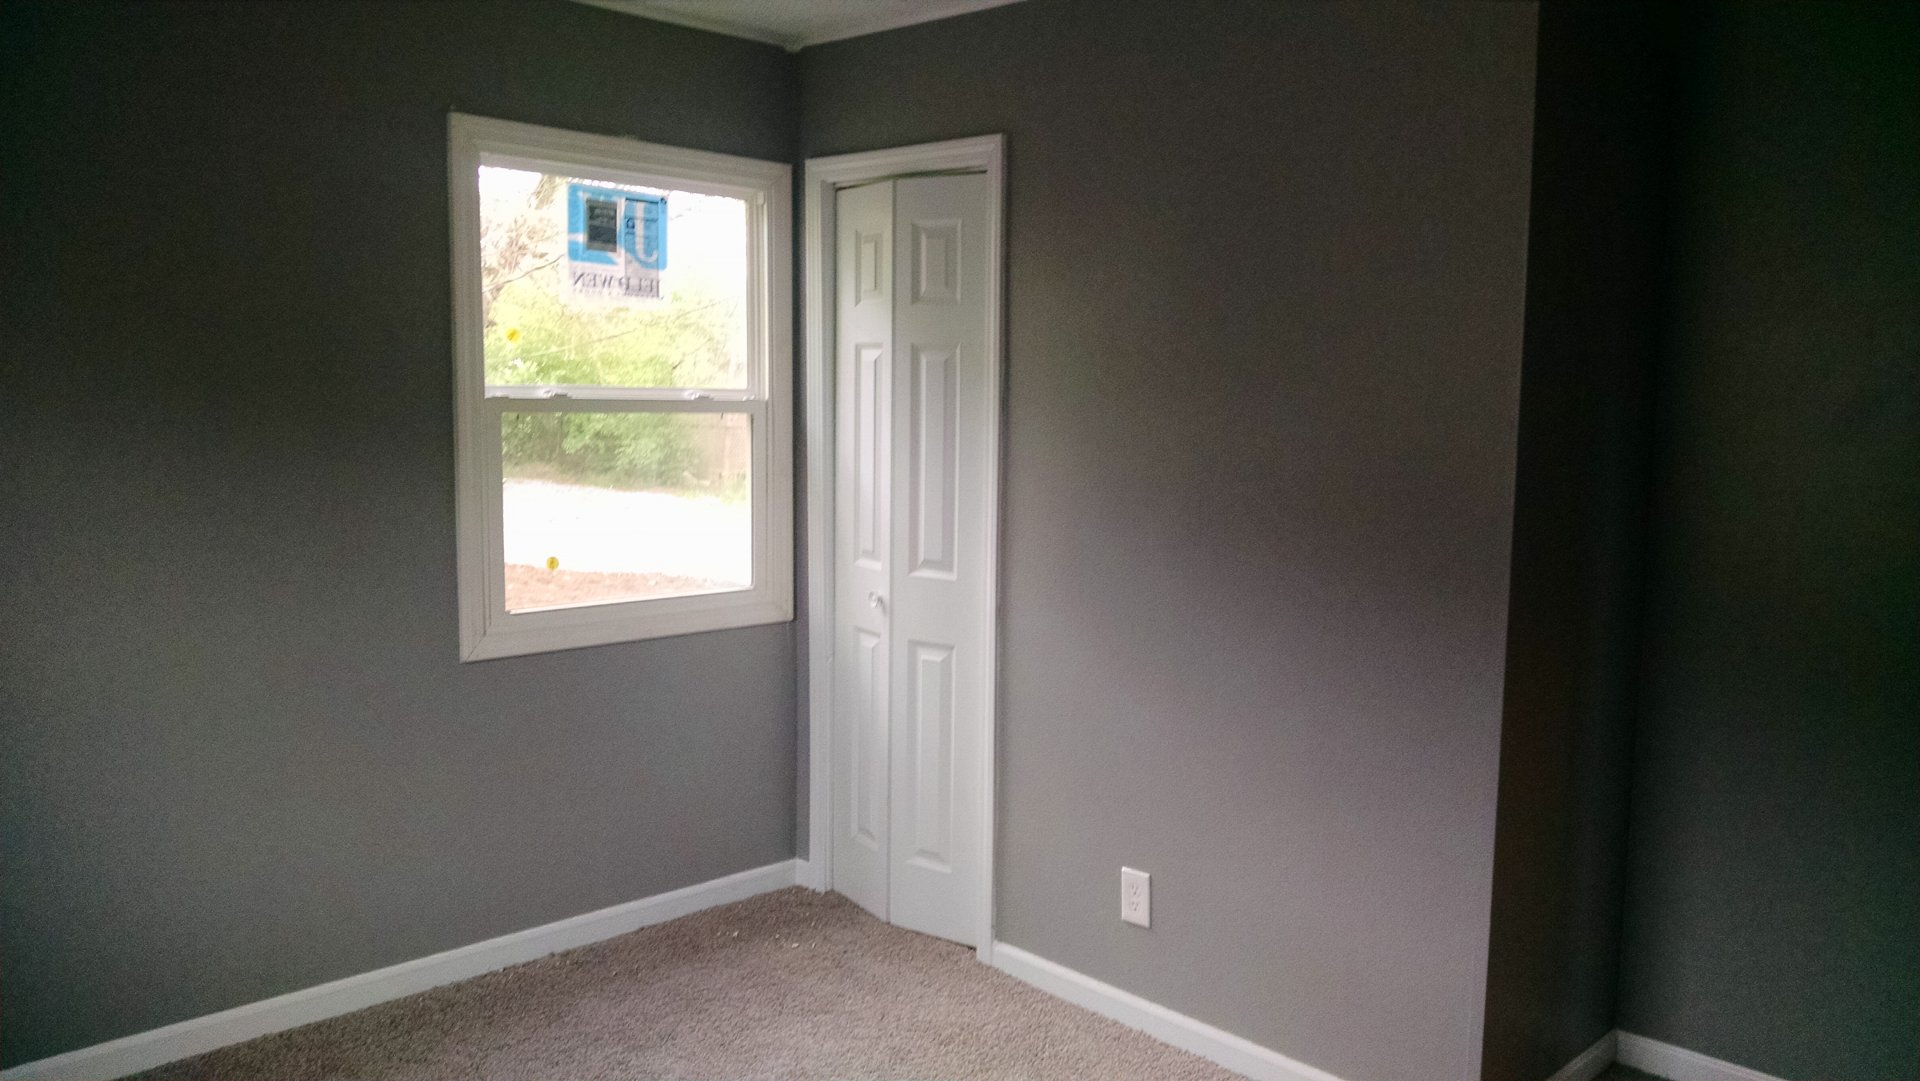 houses for sale with owner financing in columbus ohio previous next